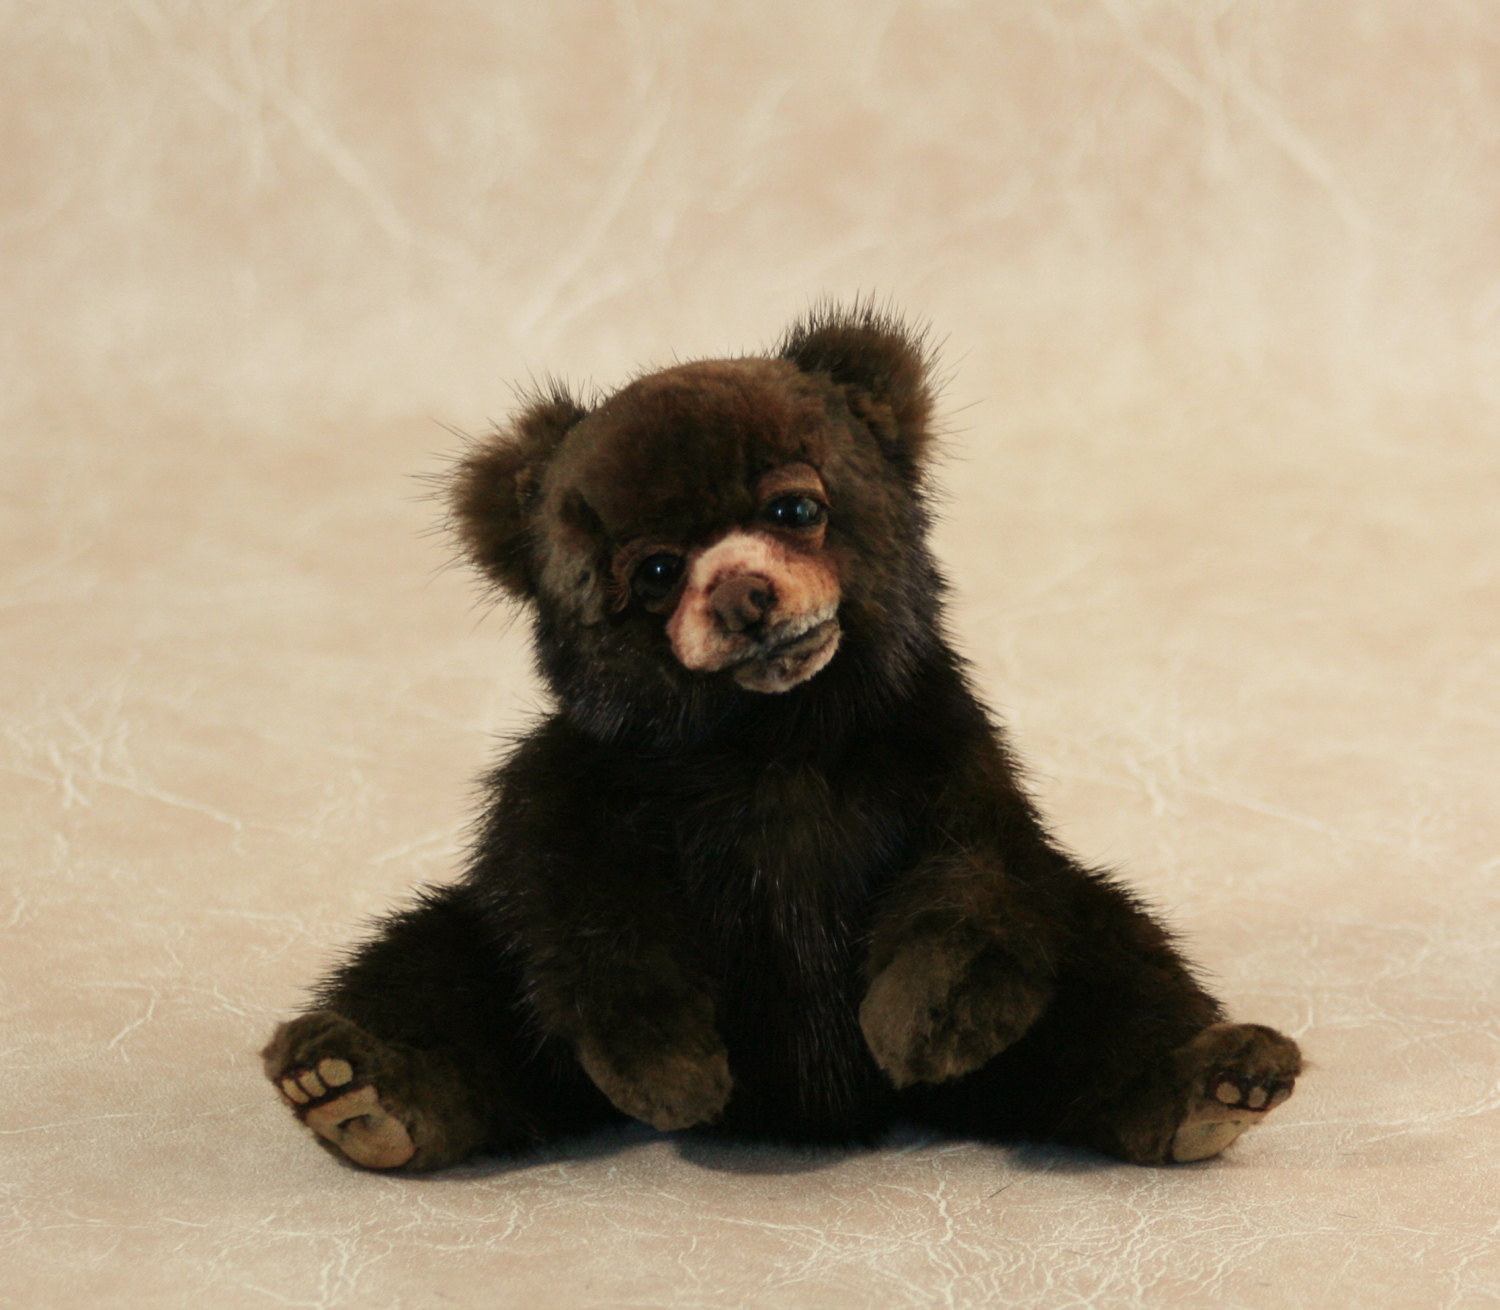 Baby Bear Cubs   www.pixshark.com - Images Galleries With ...